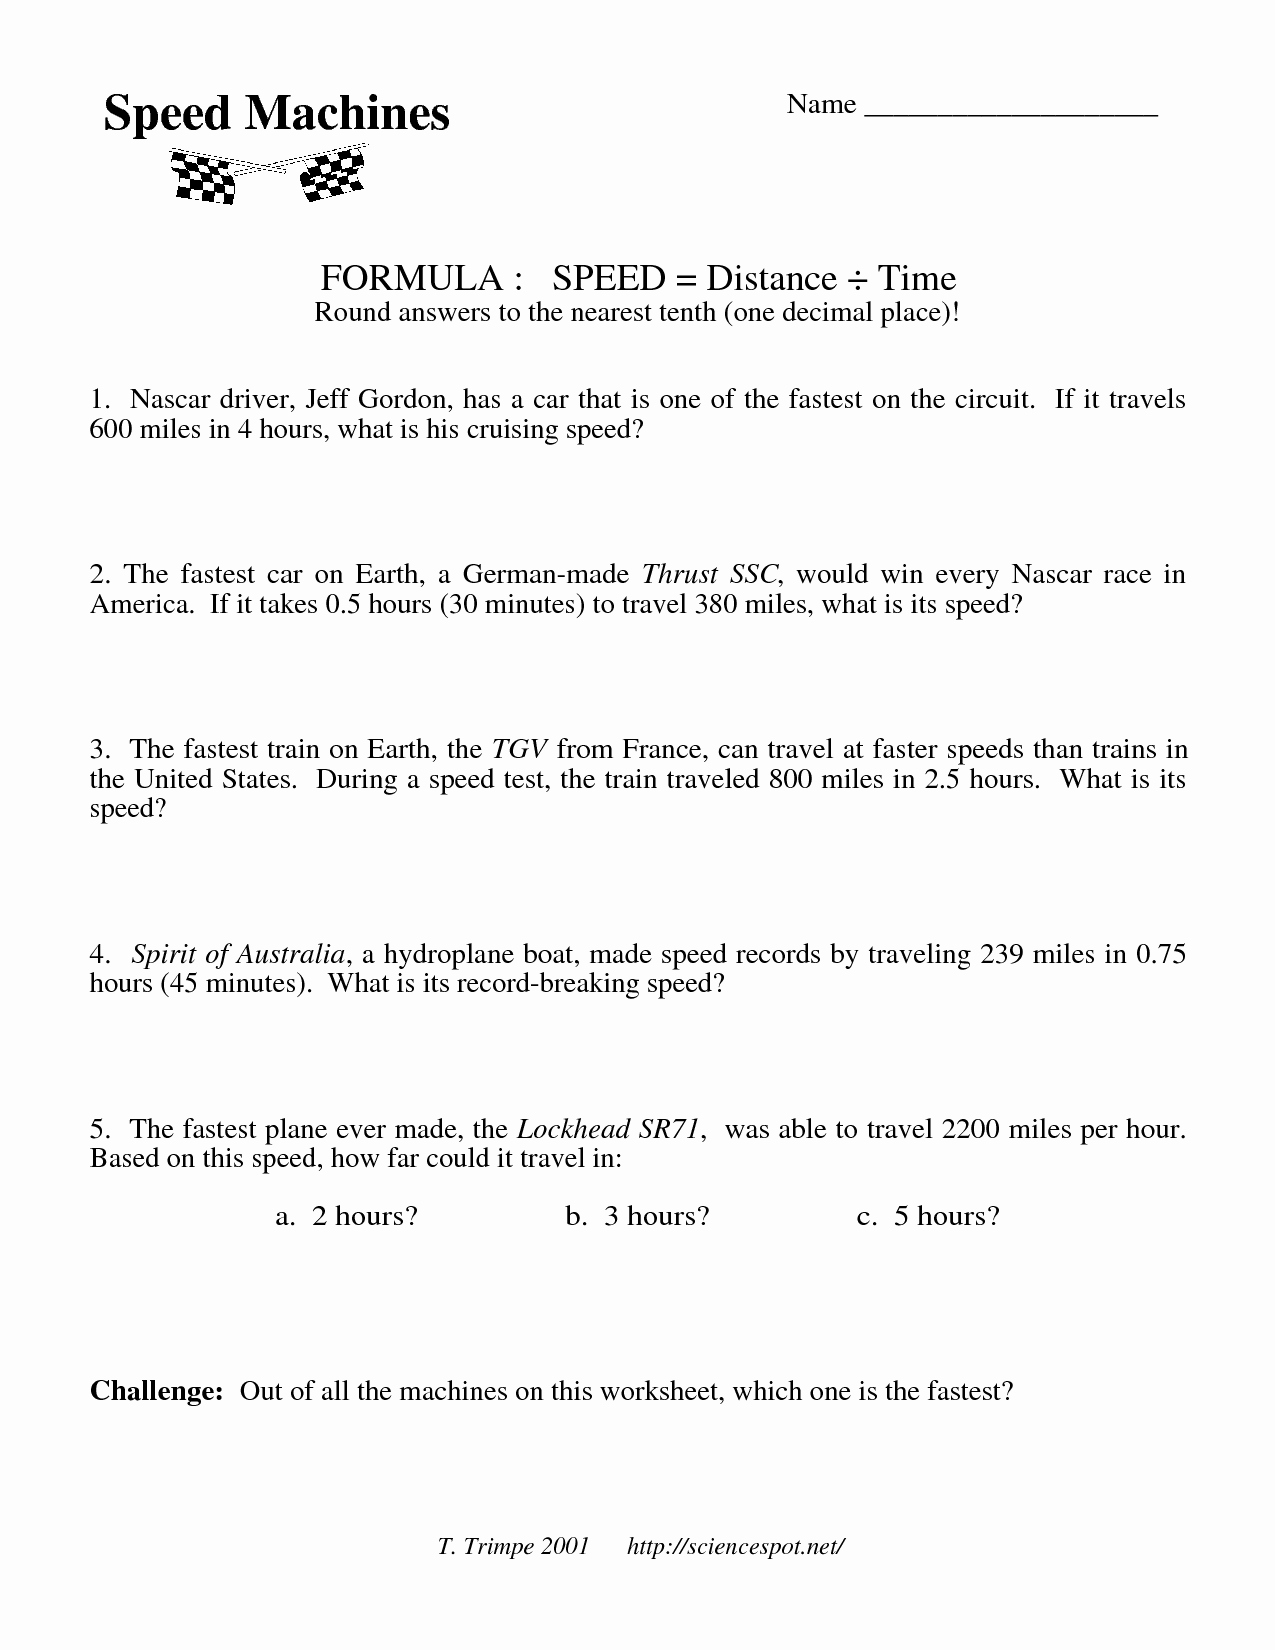 Distance formula Worksheet with Answers Awesome 17 Best Of Speed formula Worksheet Speed and